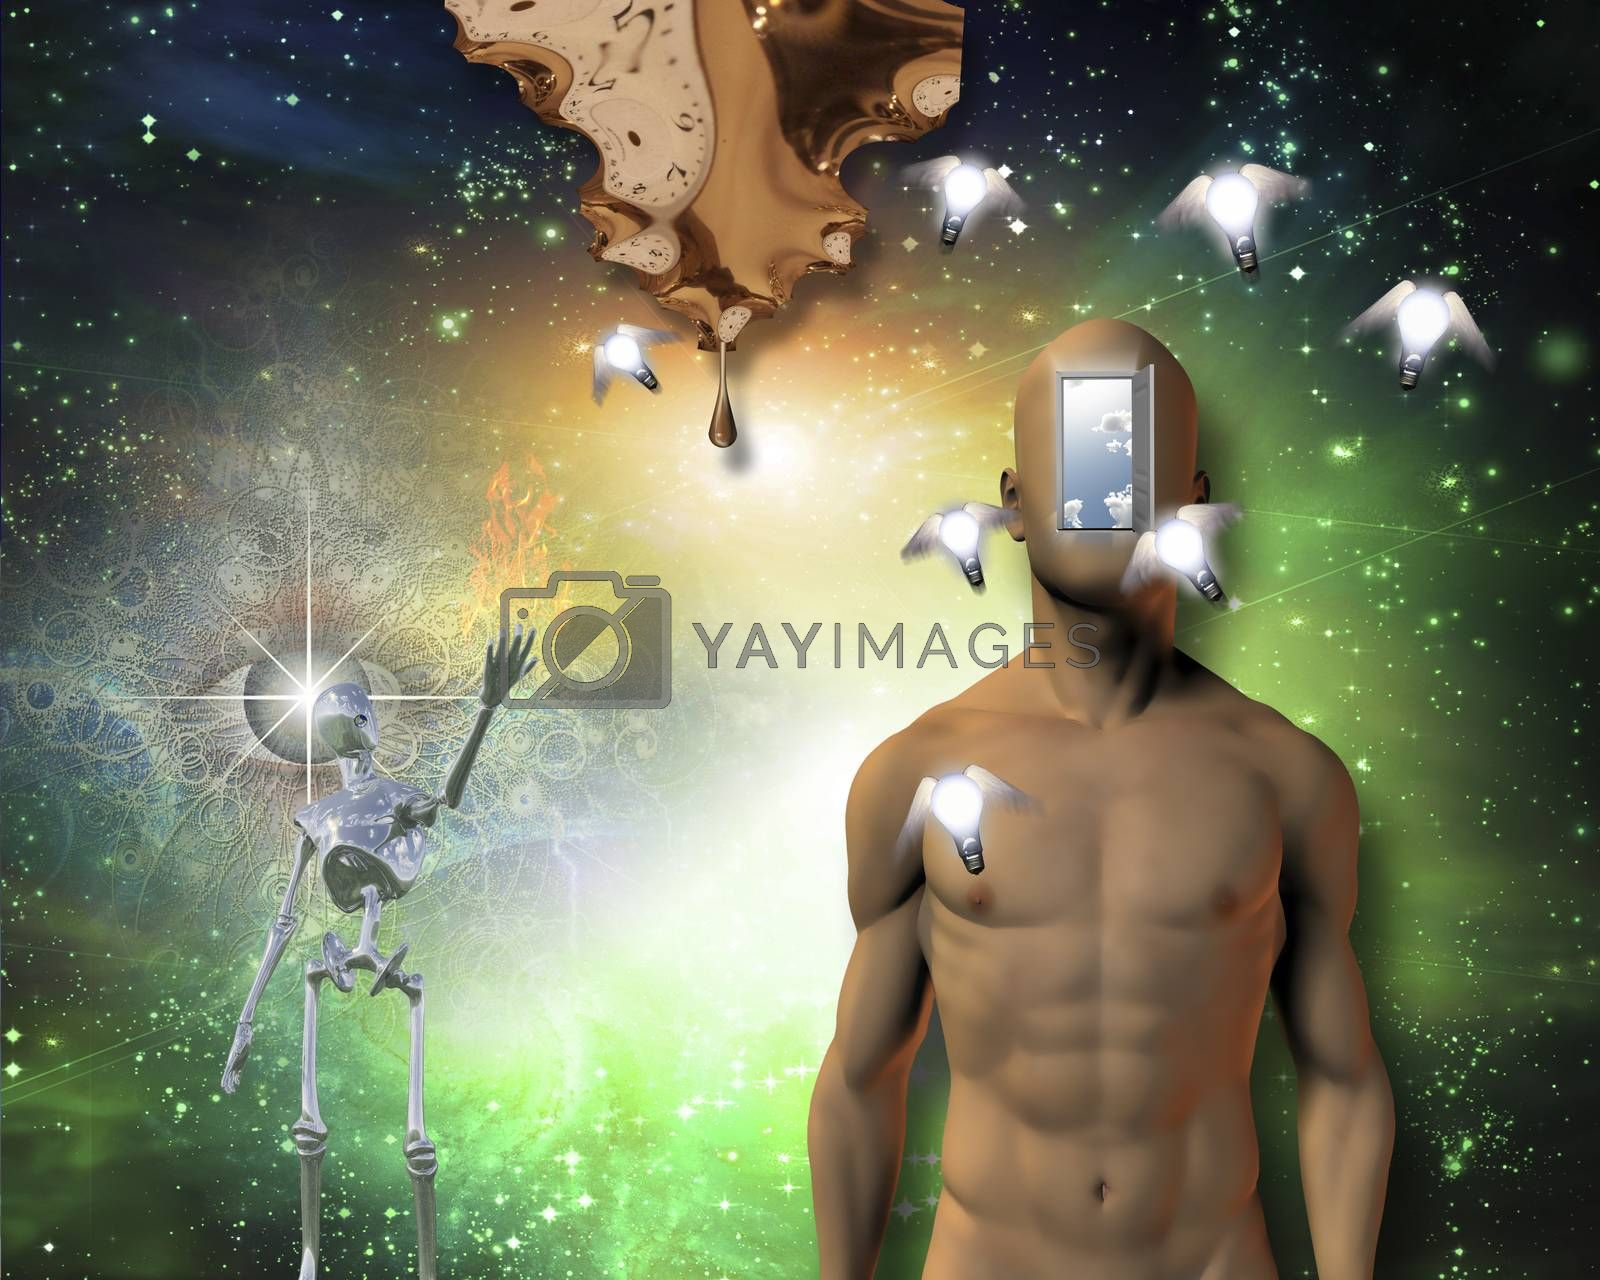 Naked man open door in face, winged light bulbs, warped time drips, gleaming robot, large flame, watchful eye and further still is deep space Some elements provided courtesy of NASA